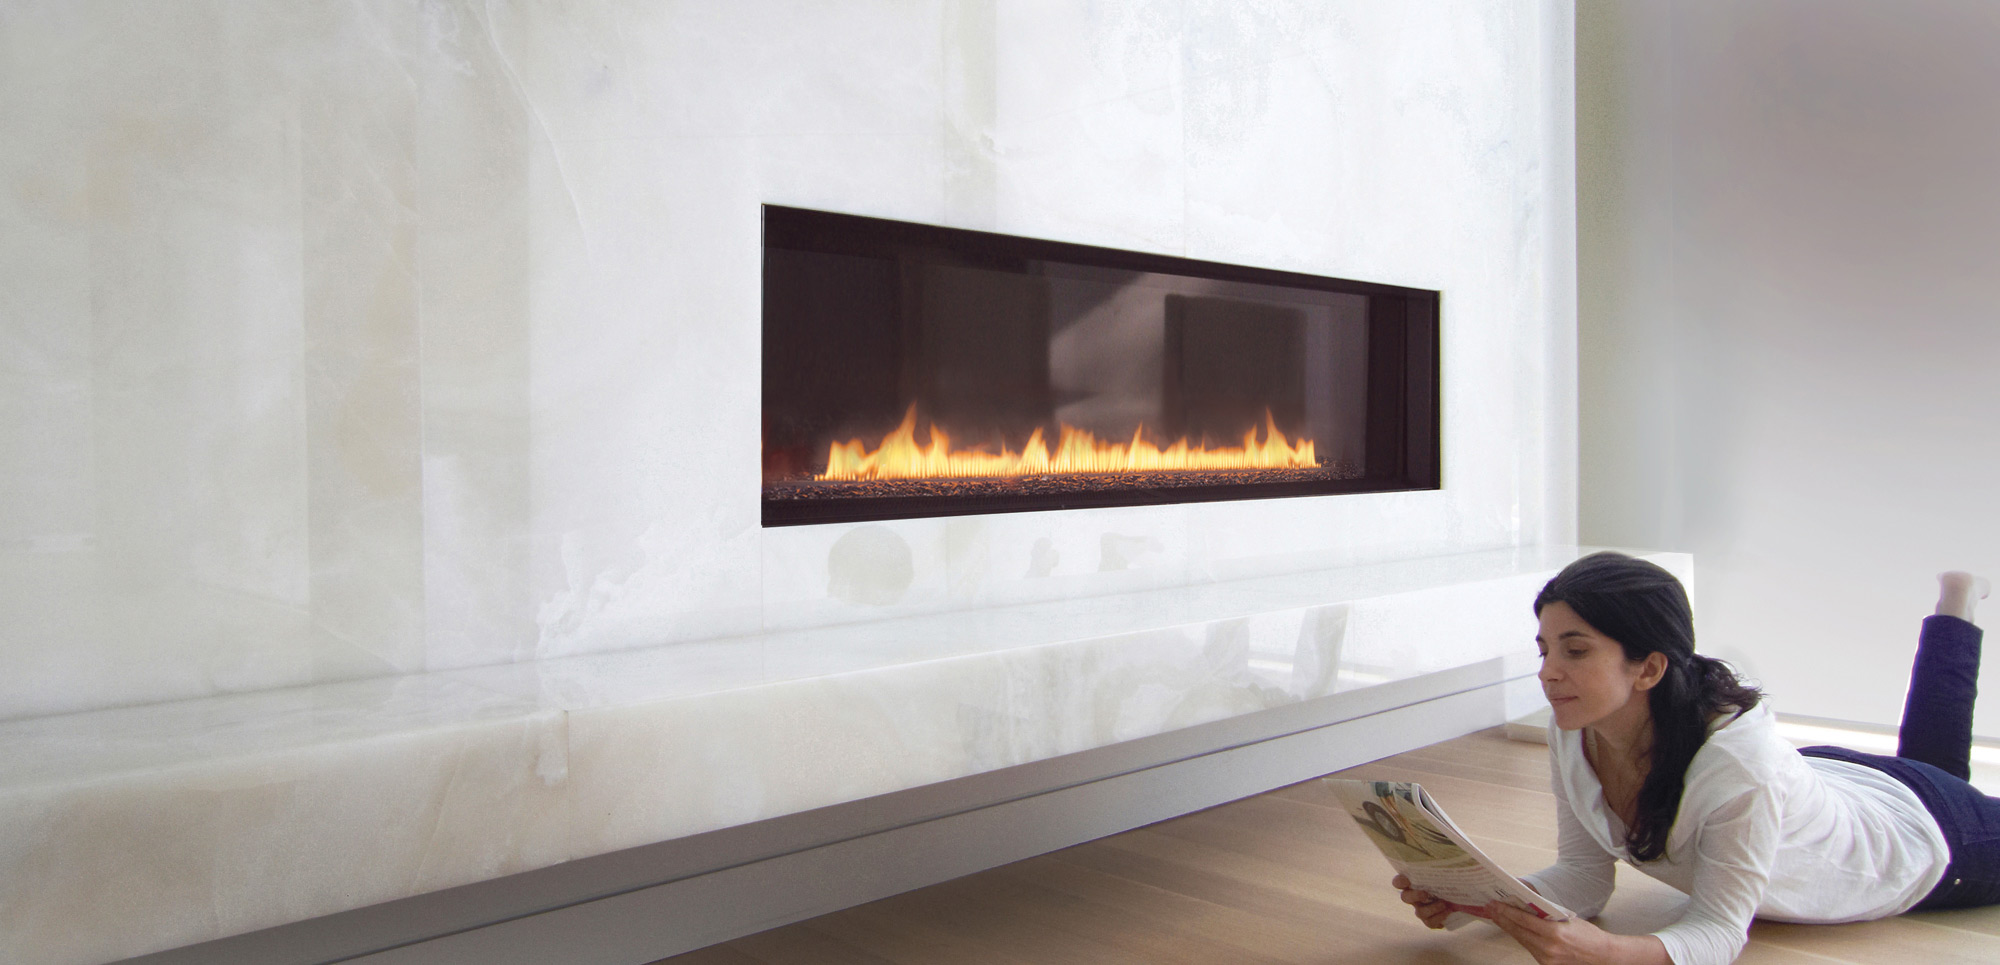 Spark Modern Fires   Spark Modern Fires Offers The Best Selection Of Modern  Gas Fireplaces. Be Inspired By Our Variety Of Fireplaces Here And Find The  Right ...